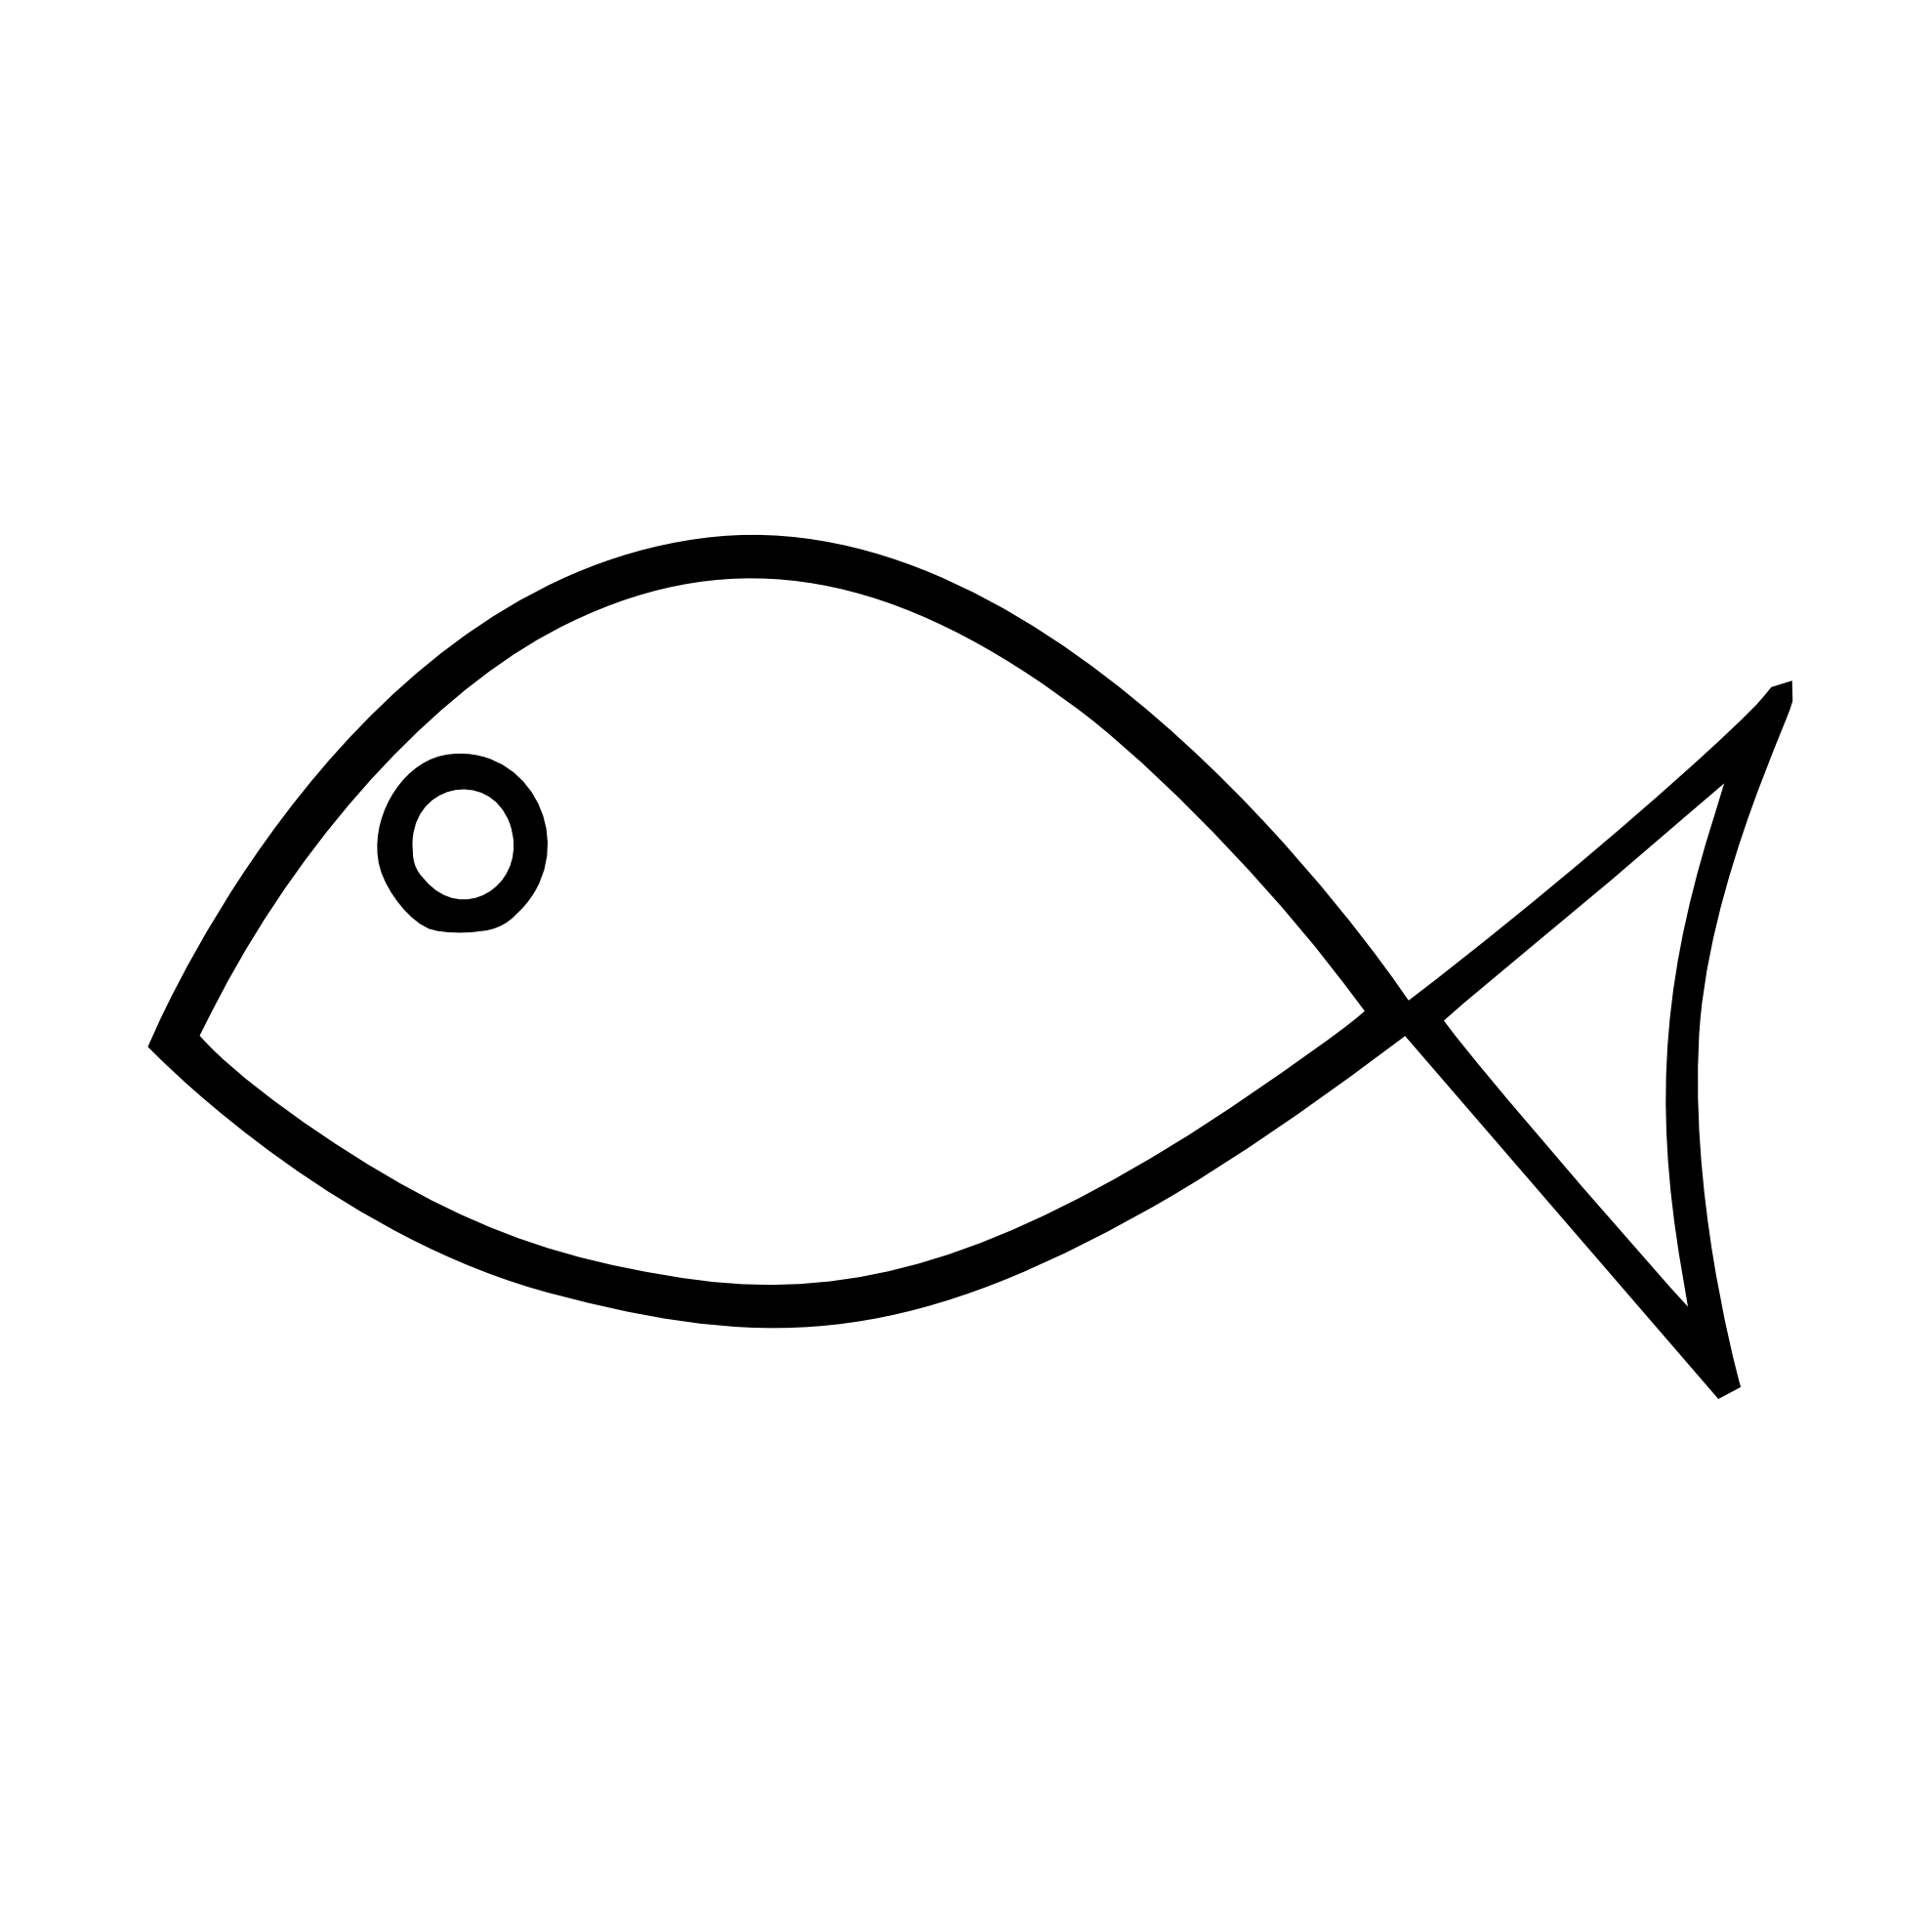 Cartoon fish clipart black and white transparent background freeuse Free Fish Line Drawings, Download Free Clip Art, Free Clip Art on ... freeuse